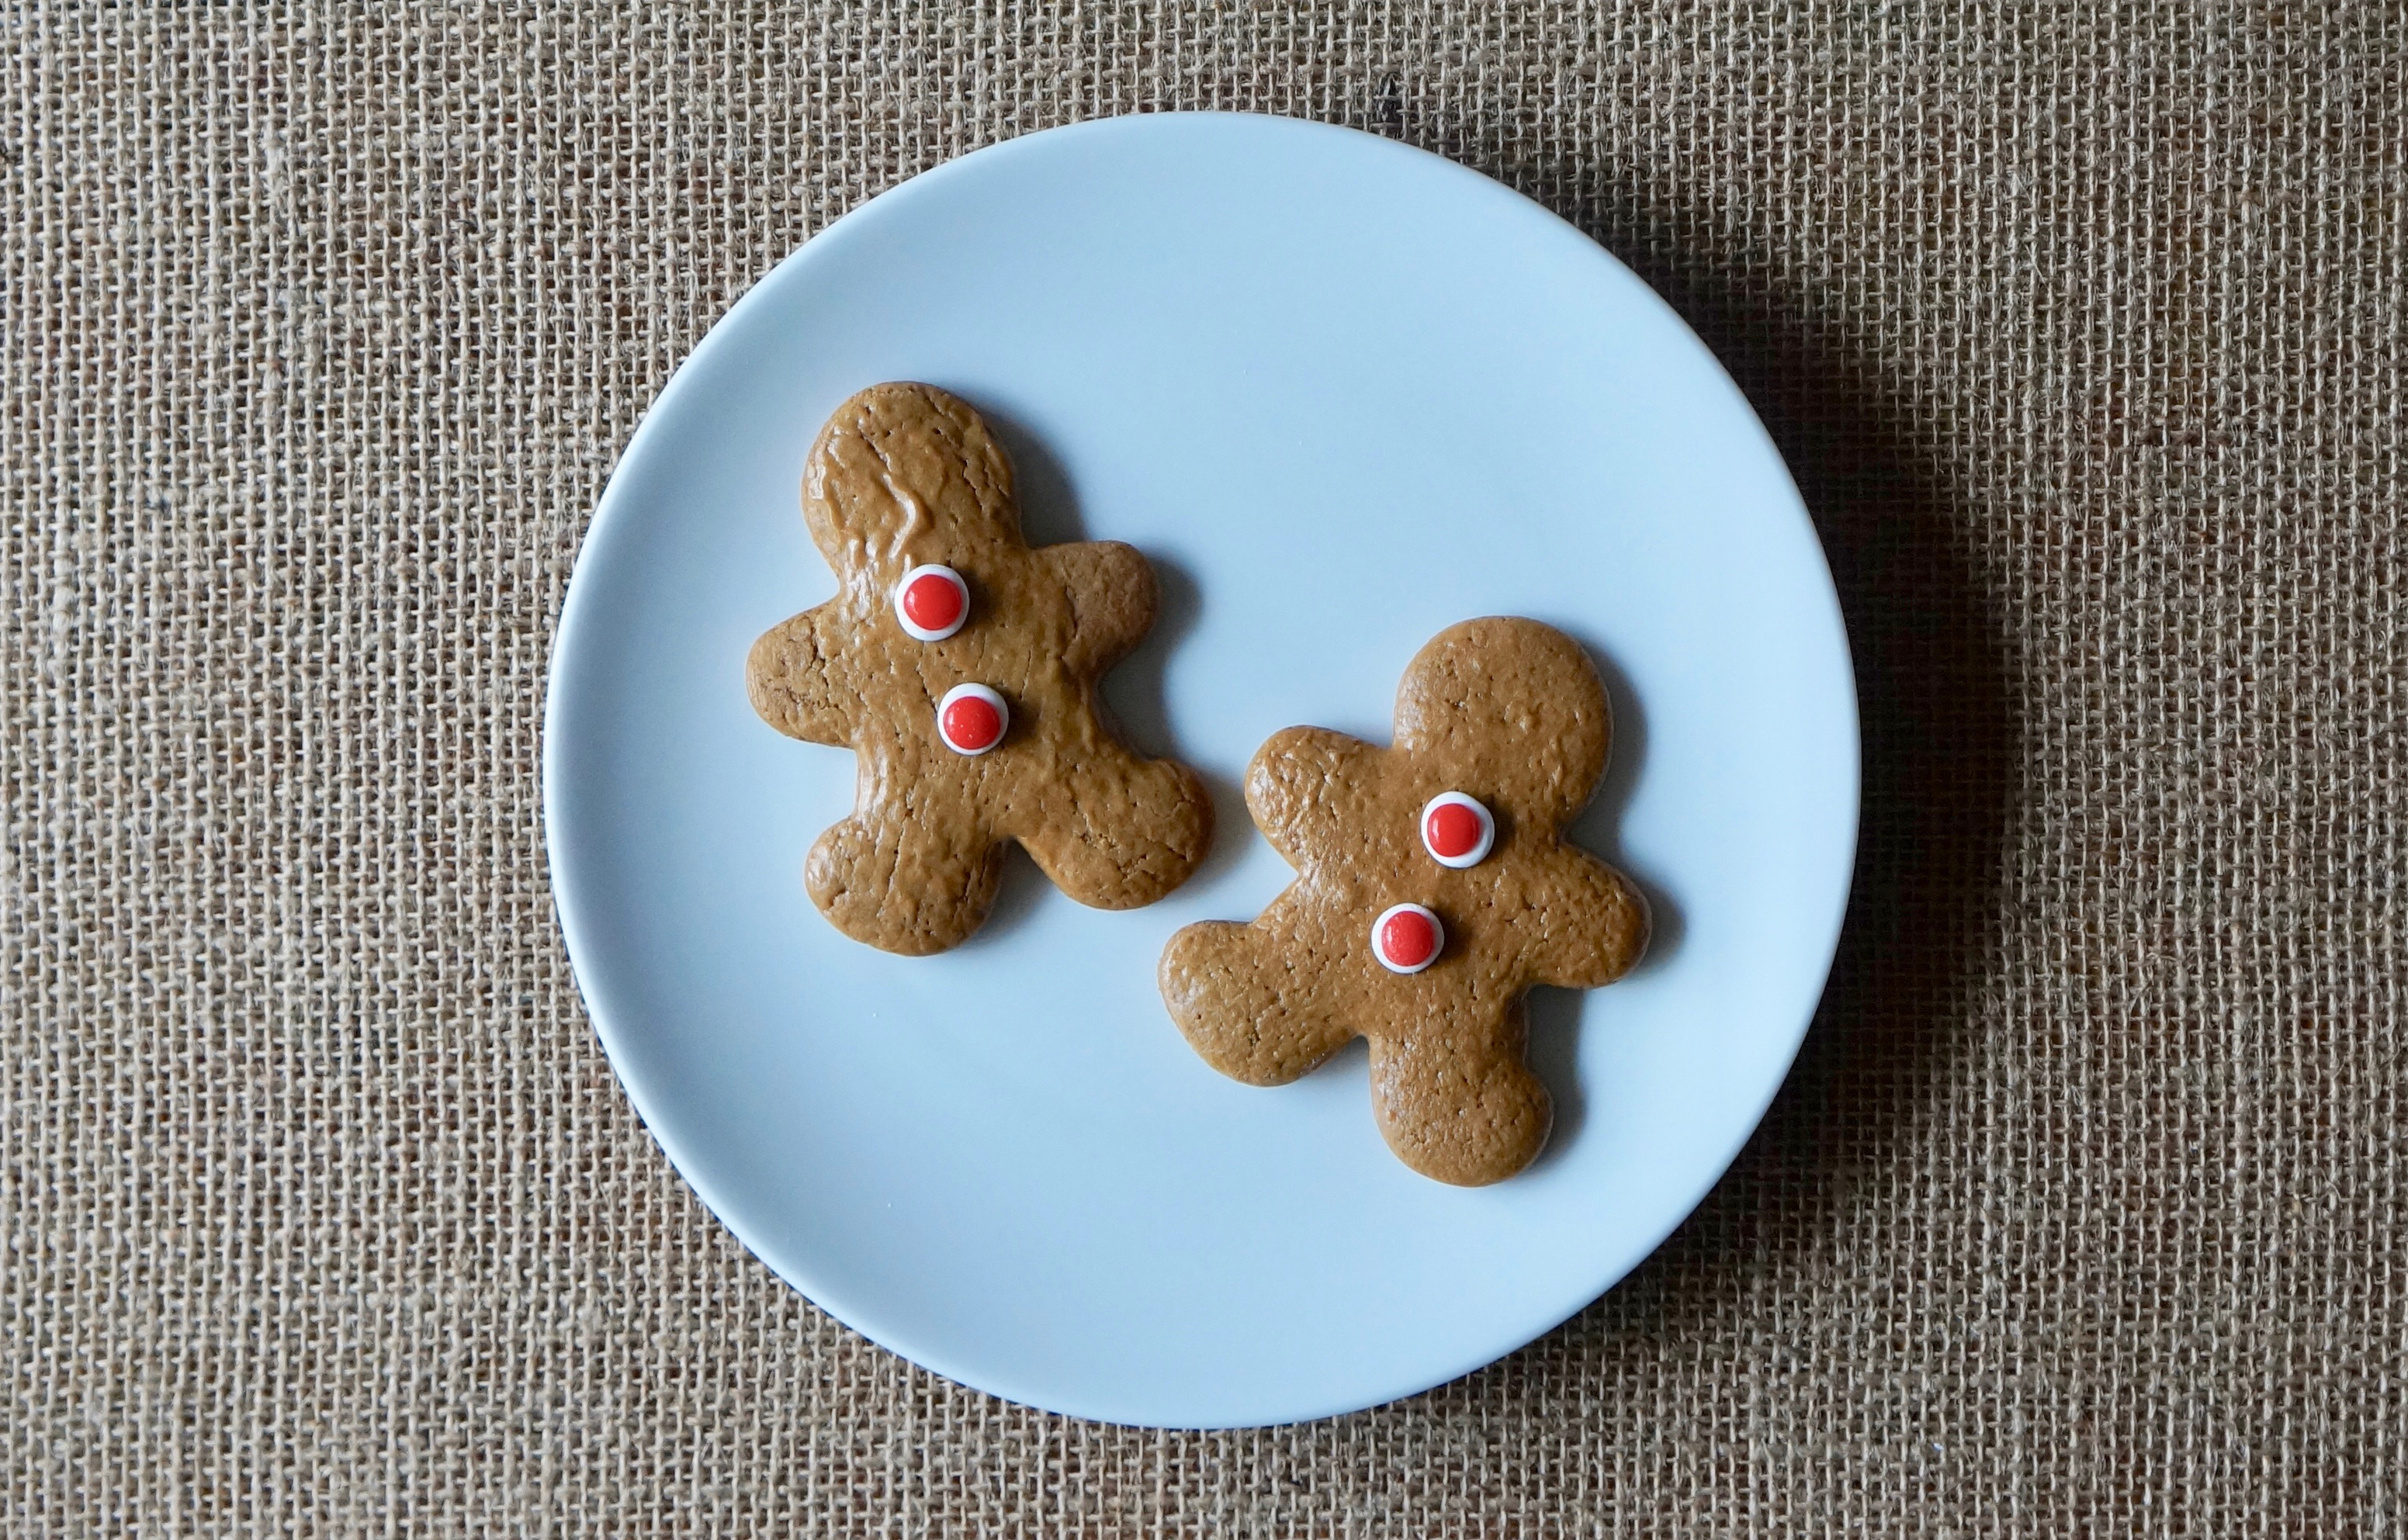 Rebecca-Gordon-Decorating-Your-Home-With-Christmas-Cookies-Buttermilk-Lipstick-Culinary-Entertaining-Techniques-Decorated-Buttermilk-Gingerbread-Cookies-Pastry-Chef-TV-Cooking-Personality-Fox 6-WBRC-Birmingham-Alabama